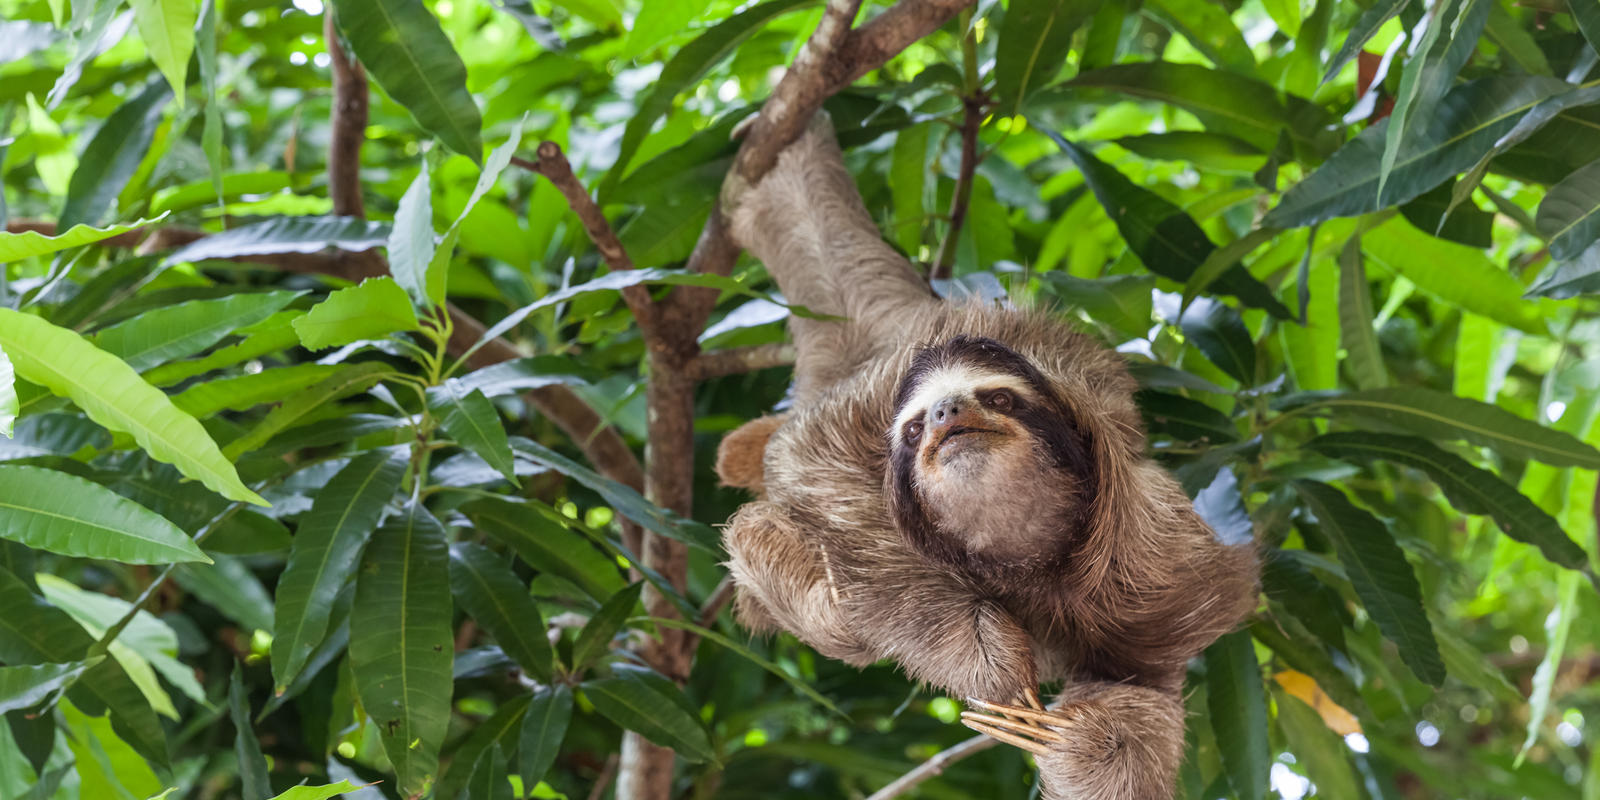 what is threre diet of sloth